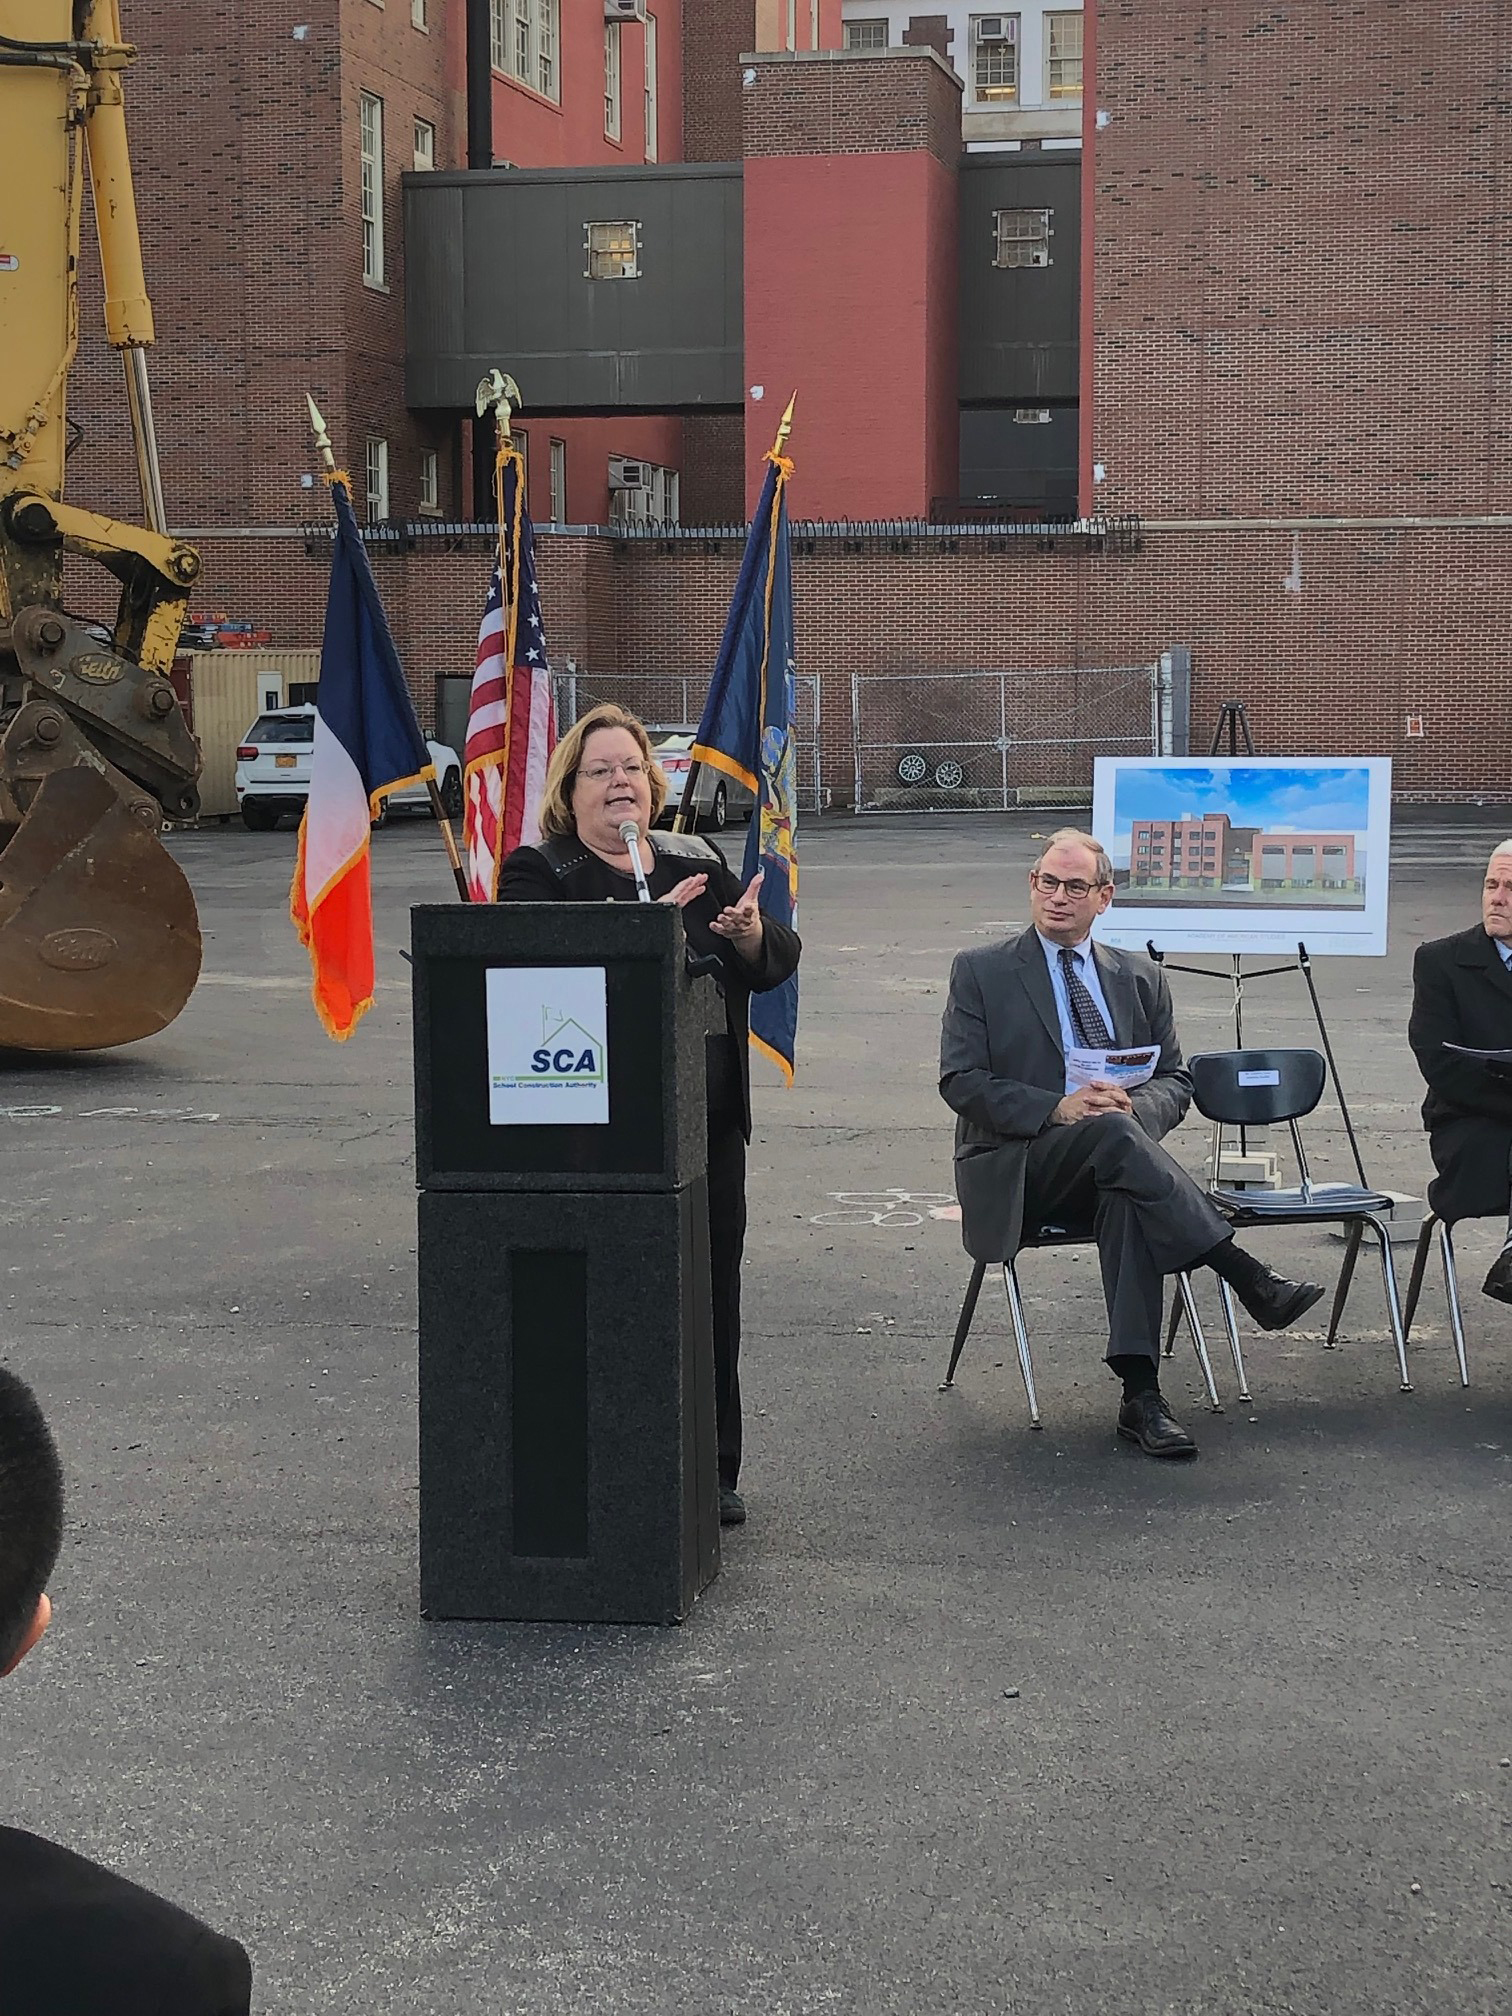 Assemblywoman Catherine Nolan speaking to the crowd.